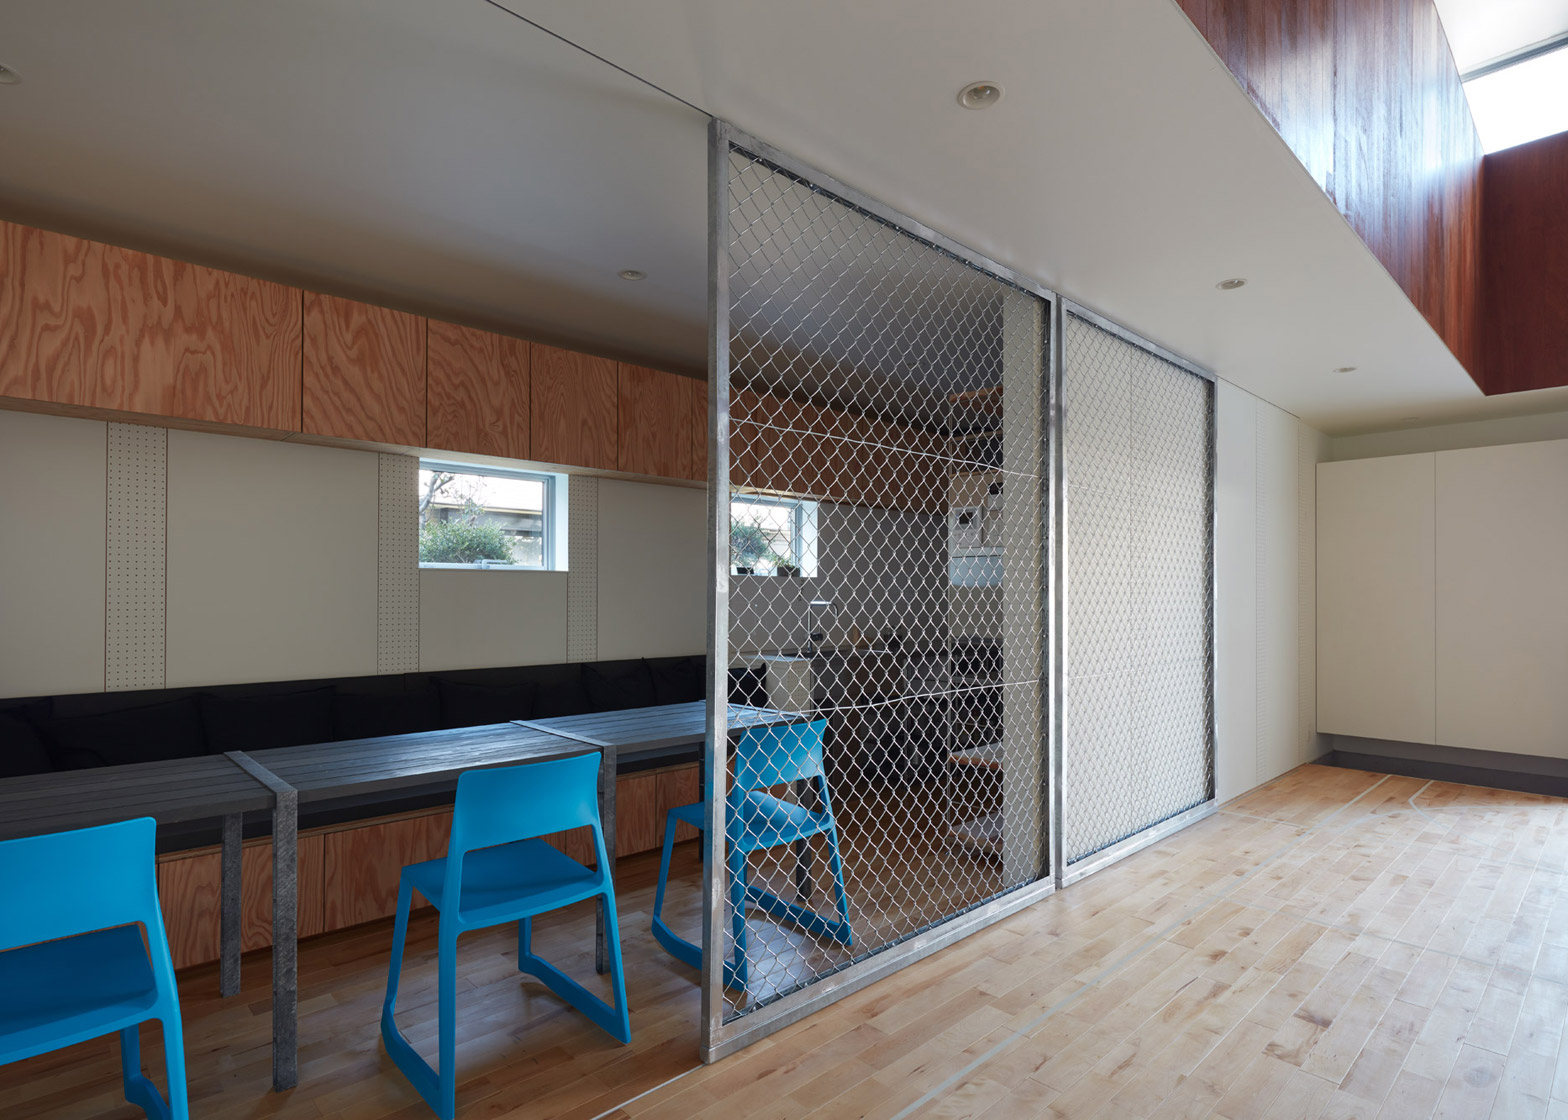 A House In Japan Has An Indoor Basketball Court 6 - Your No.1 source ...